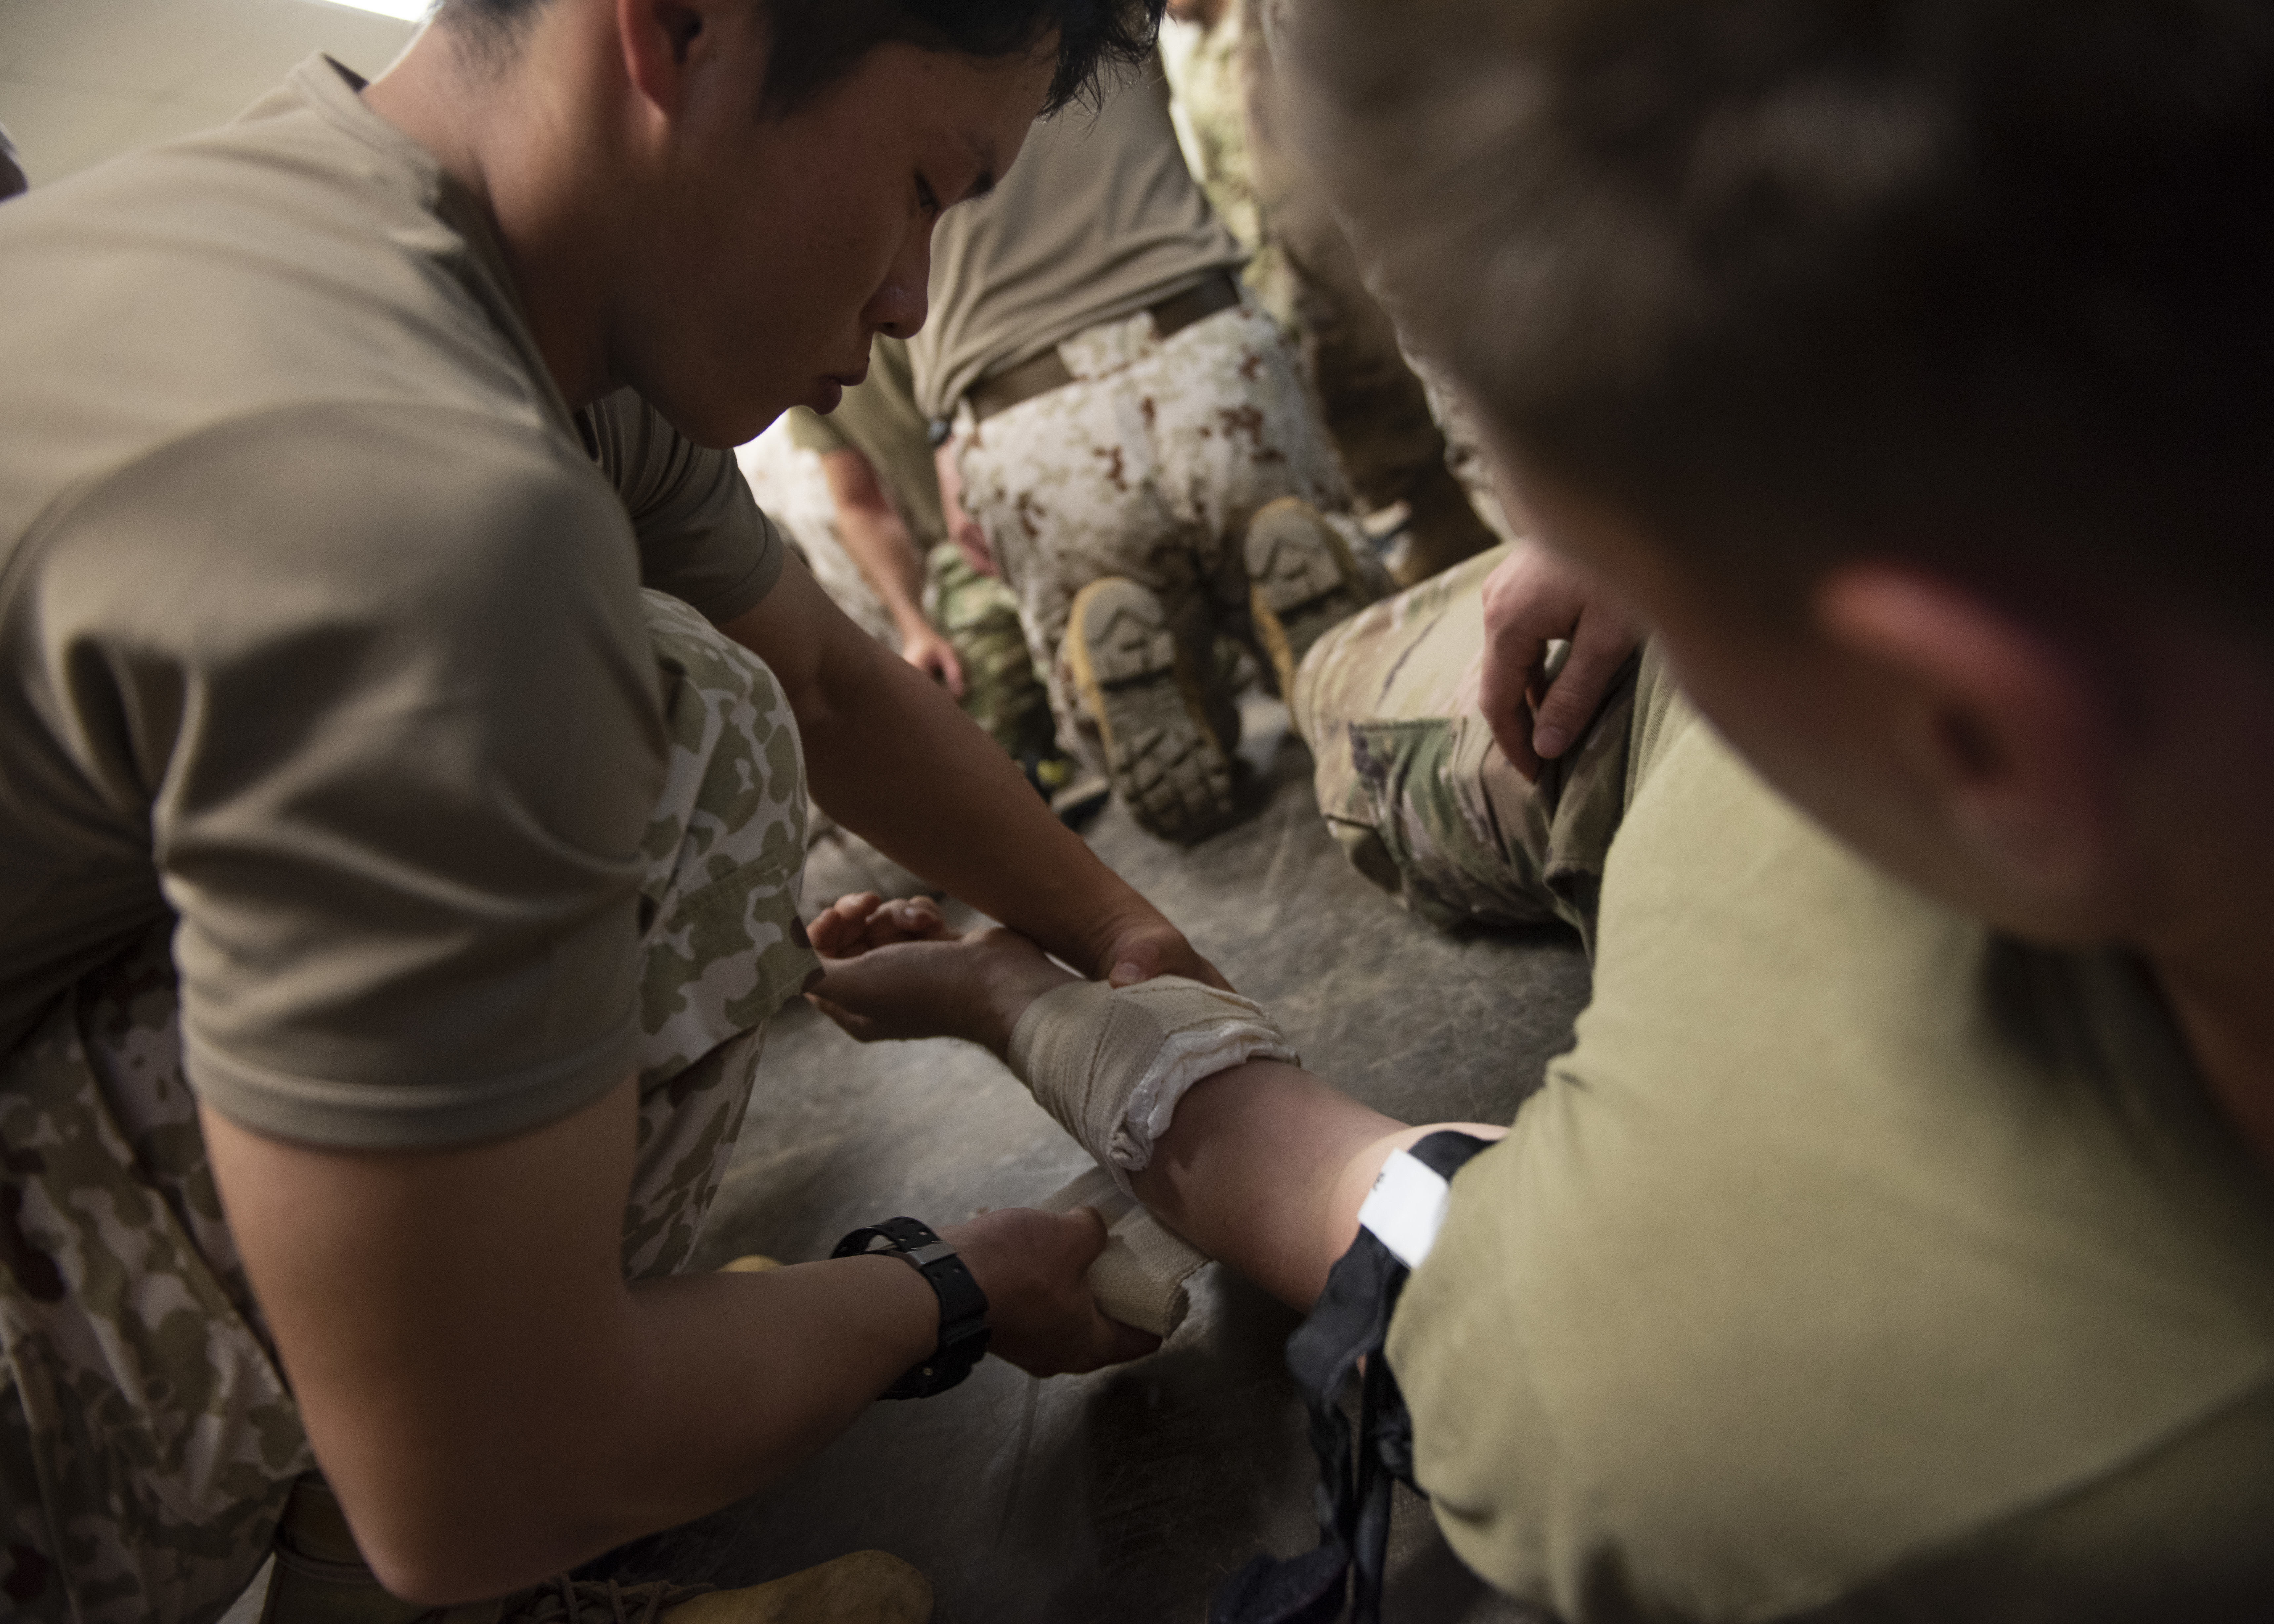 A Japanese Ground Self-Defense Force soldier applies a bandage to a U.S. Army Soldier, assigned to Combined Joint Task Force-Horn of Africa, during a tactical combat casualty care course at Camp Lemonnier, Djibouti, May 27, 2019. The course was part of a two-day subject matter expert medical exchange that focused on first-aid methodologies between the two partner nations in Djibouti. (U.S. Air Force photo by Staff Sgt. Franklin R. Ramos)